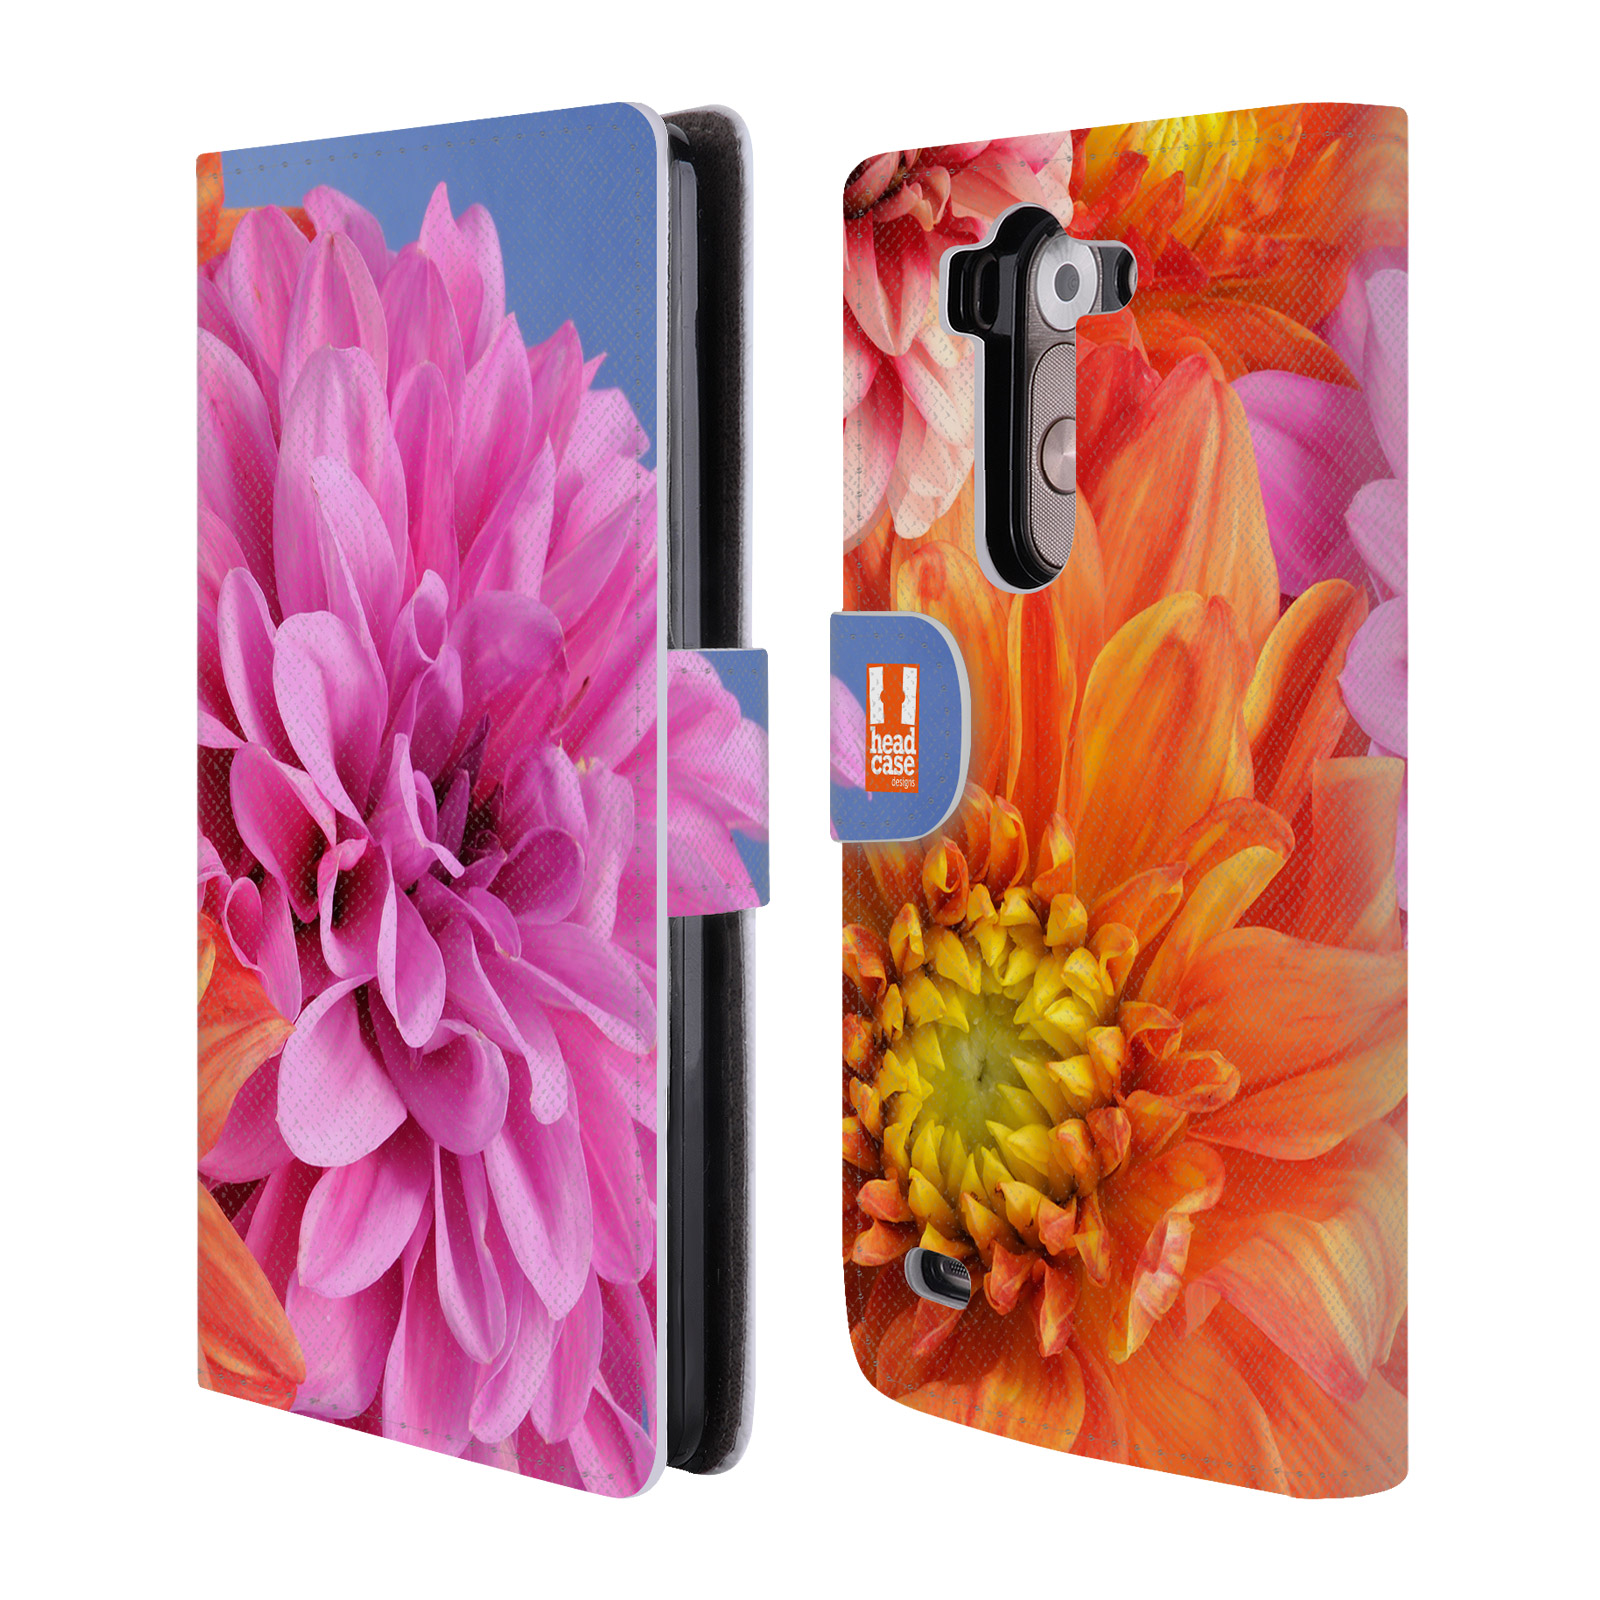 Head case designs flowers leather book wallet case for lg - Lg fridge with flower design ...